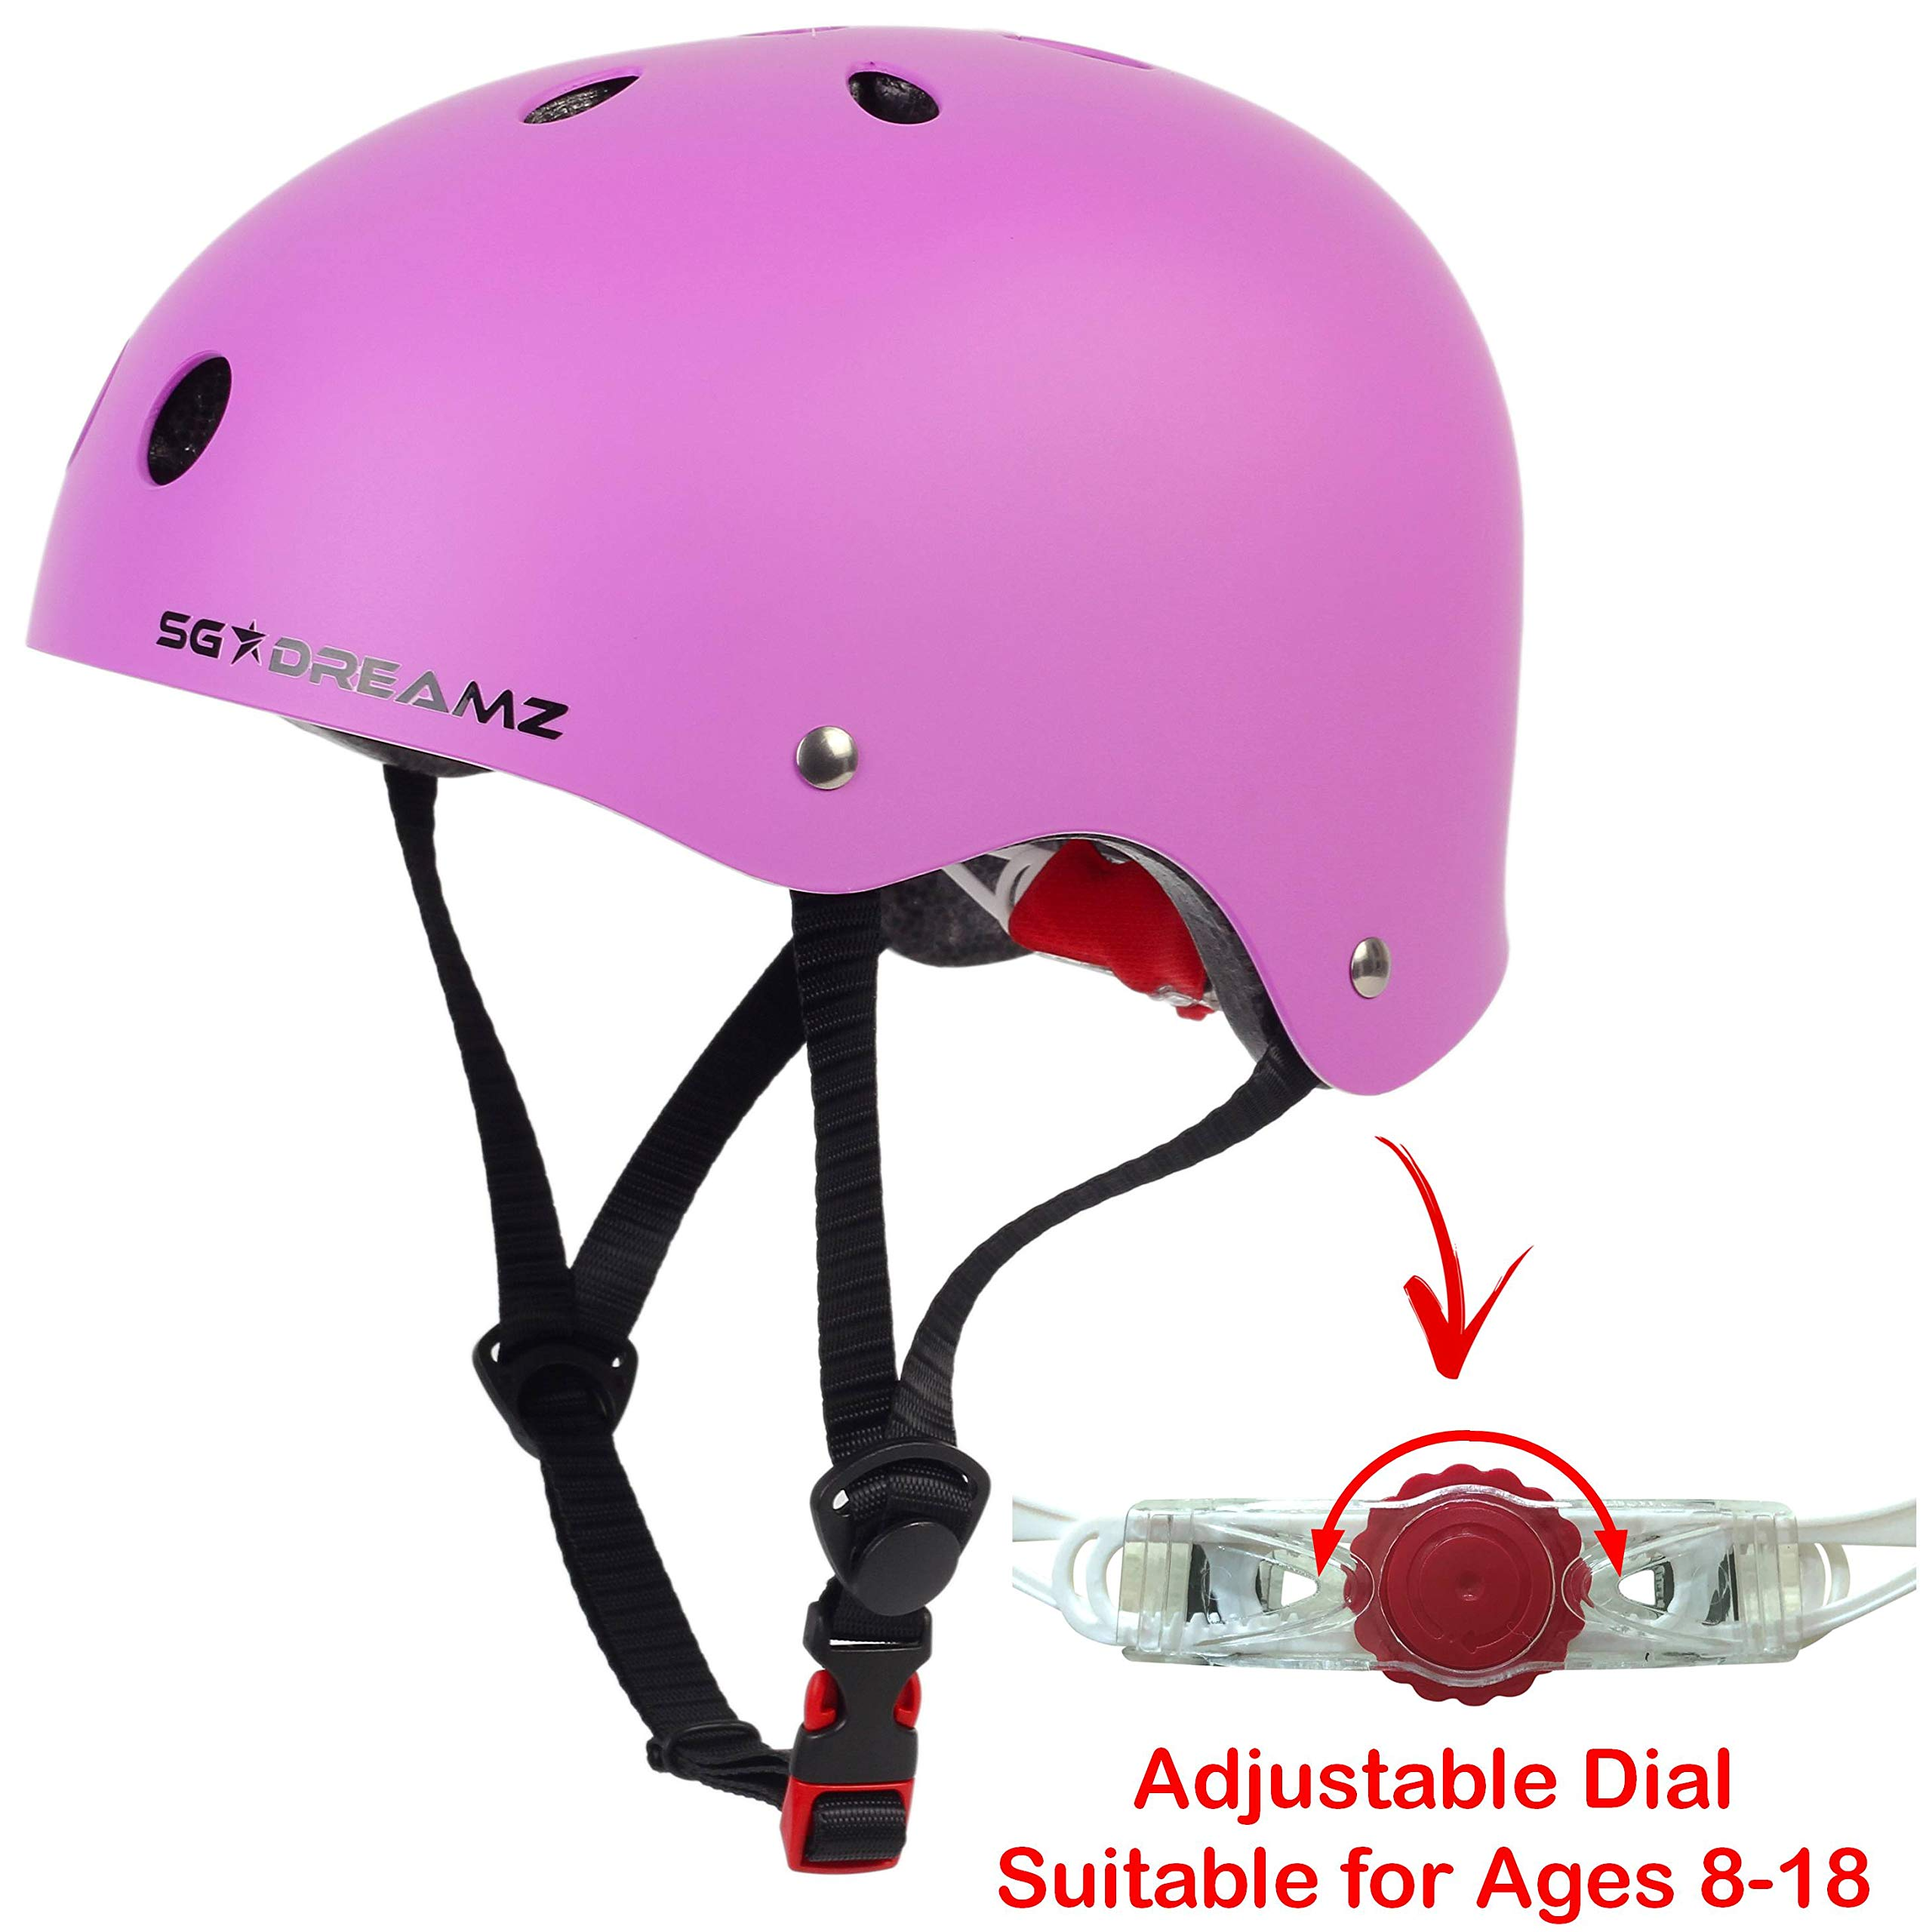 Youth Helmet - Multi-Sport Helmet for Skateboard Scooter Skating Bicycle Bike Cycling - Adjustable for Youth from Ages 8 to 18 - Certified for Safety (SK11M/L+MattePurple)